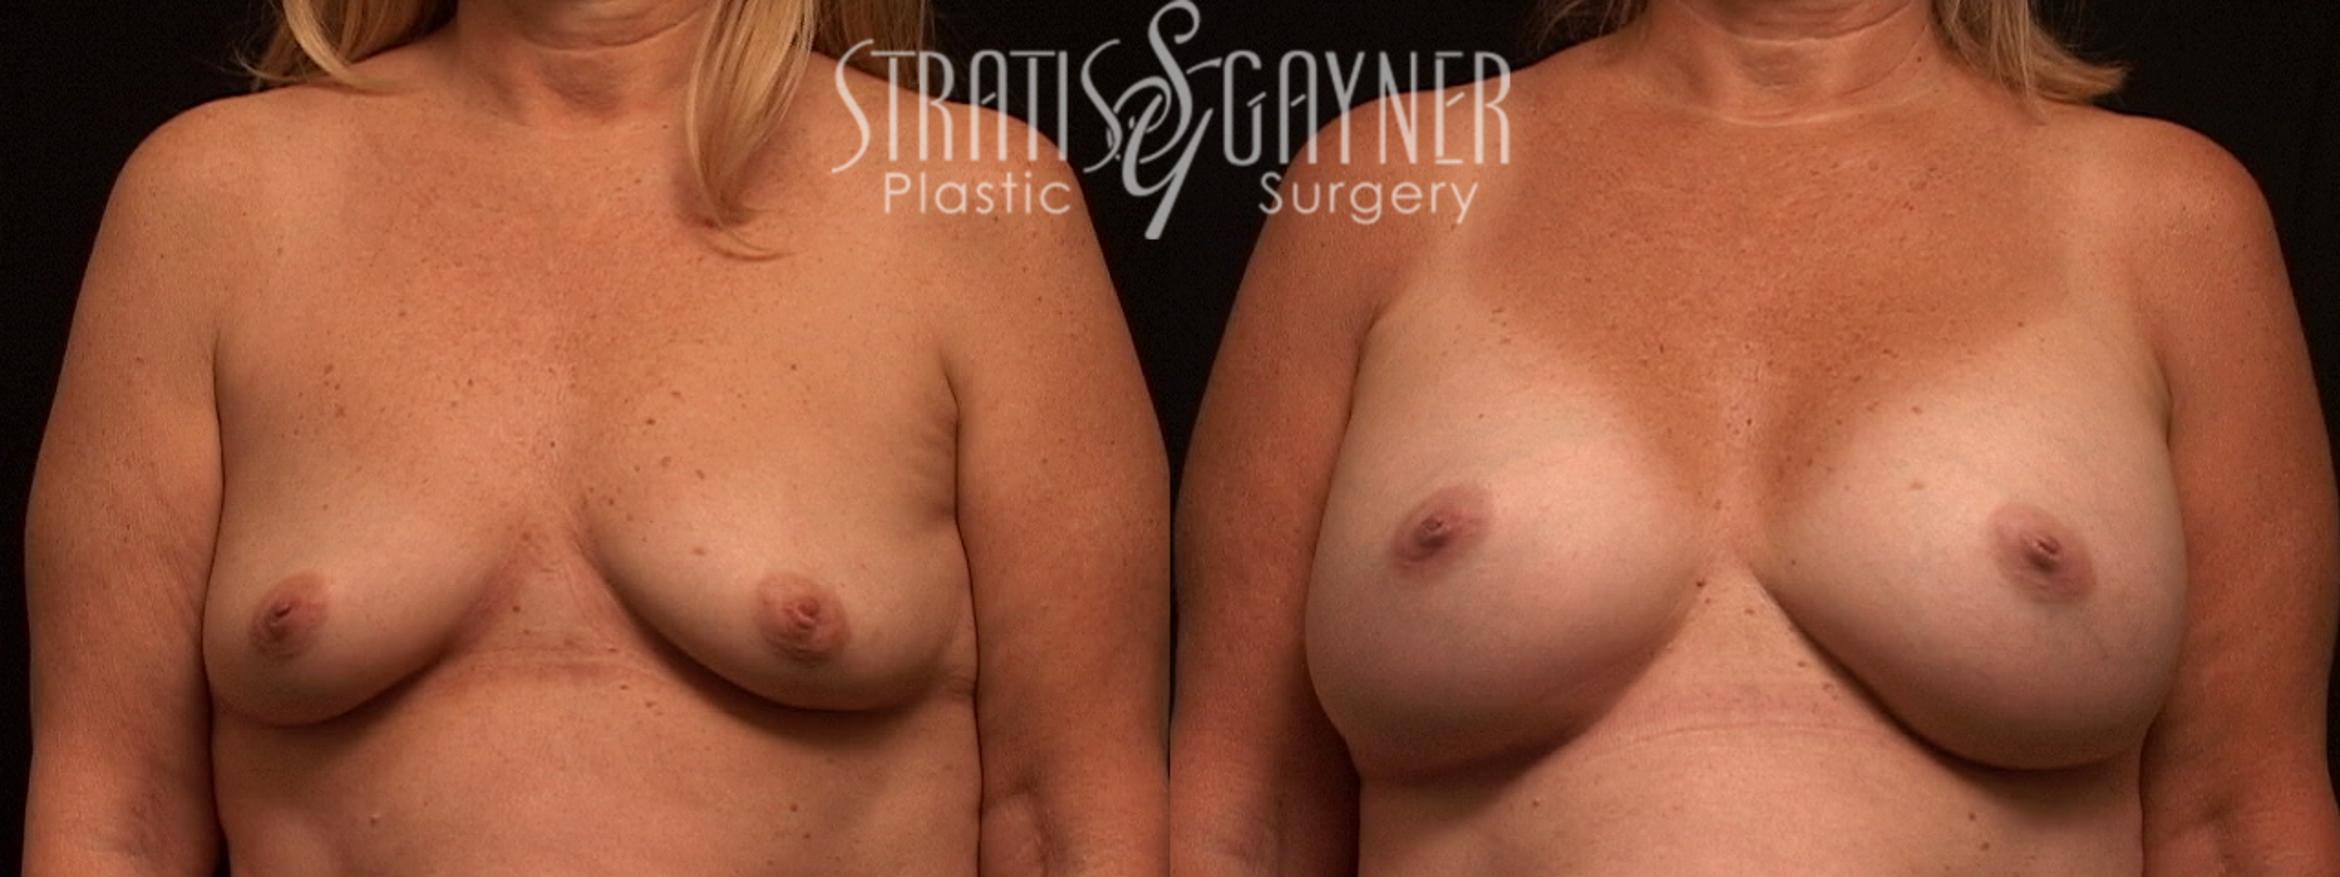 Breast Augmentation Case 80 Before & After View #1 | Harrisburg, PA | Stratis Gayner Plastic Surgery